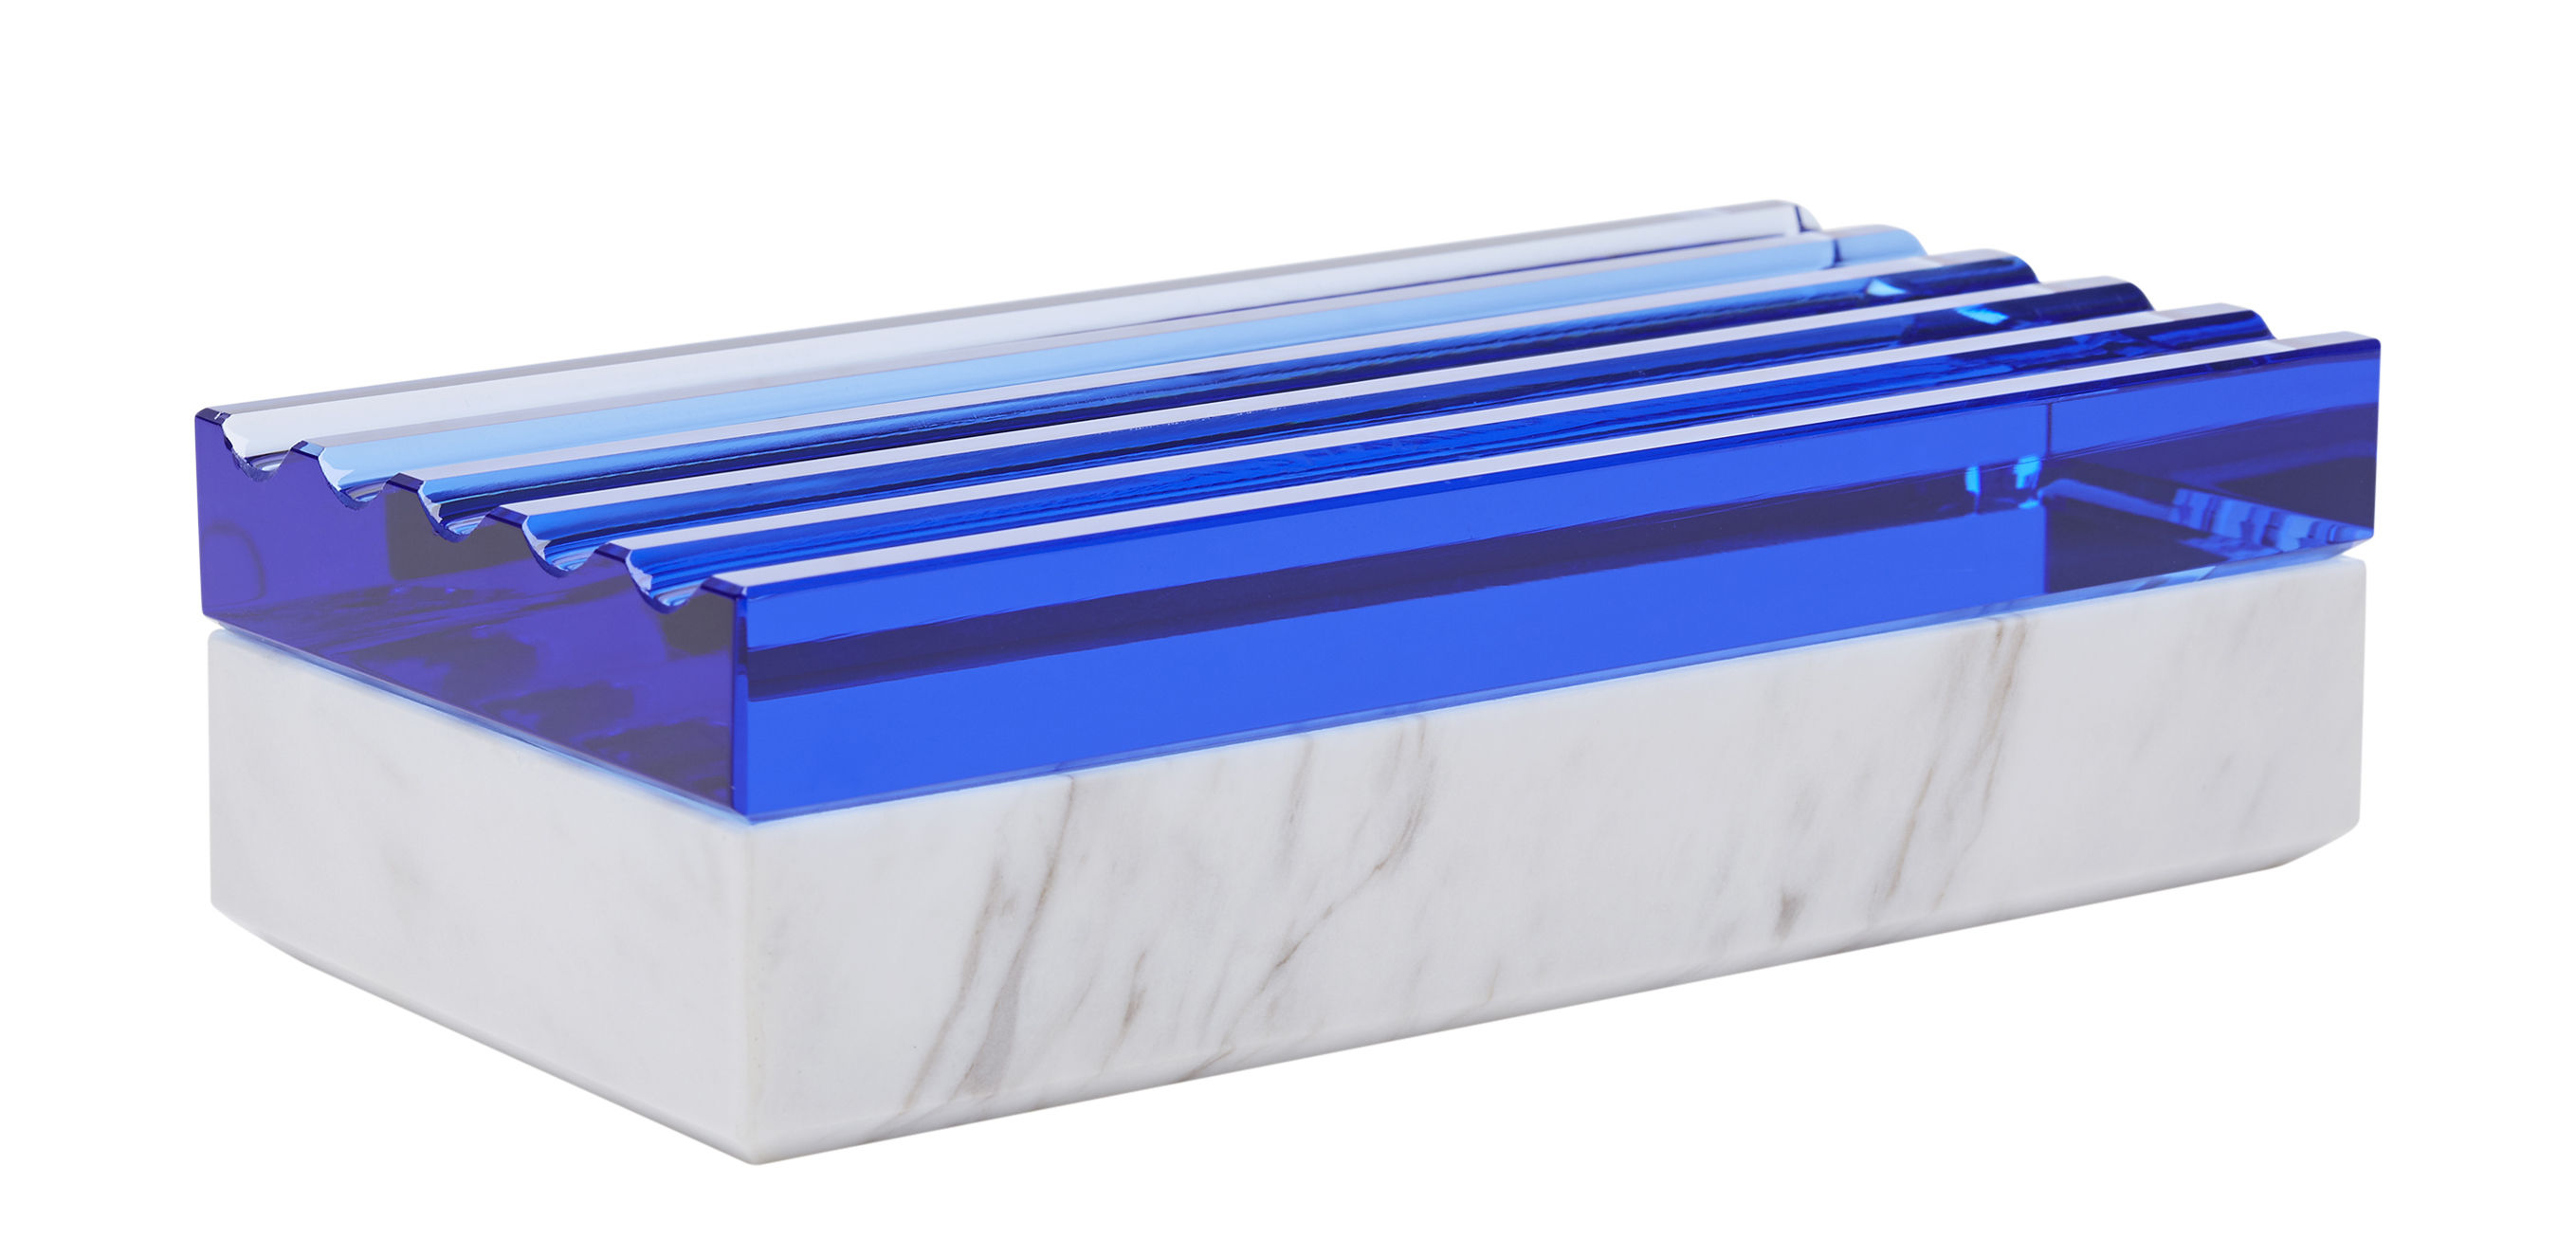 Accessories - Bathroom Accessories - Lid Scallop Box - 17 x 8 x H 4,5 cm - Marble & glass by Tom Dixon - White marble/ Blue - Glass, Marble